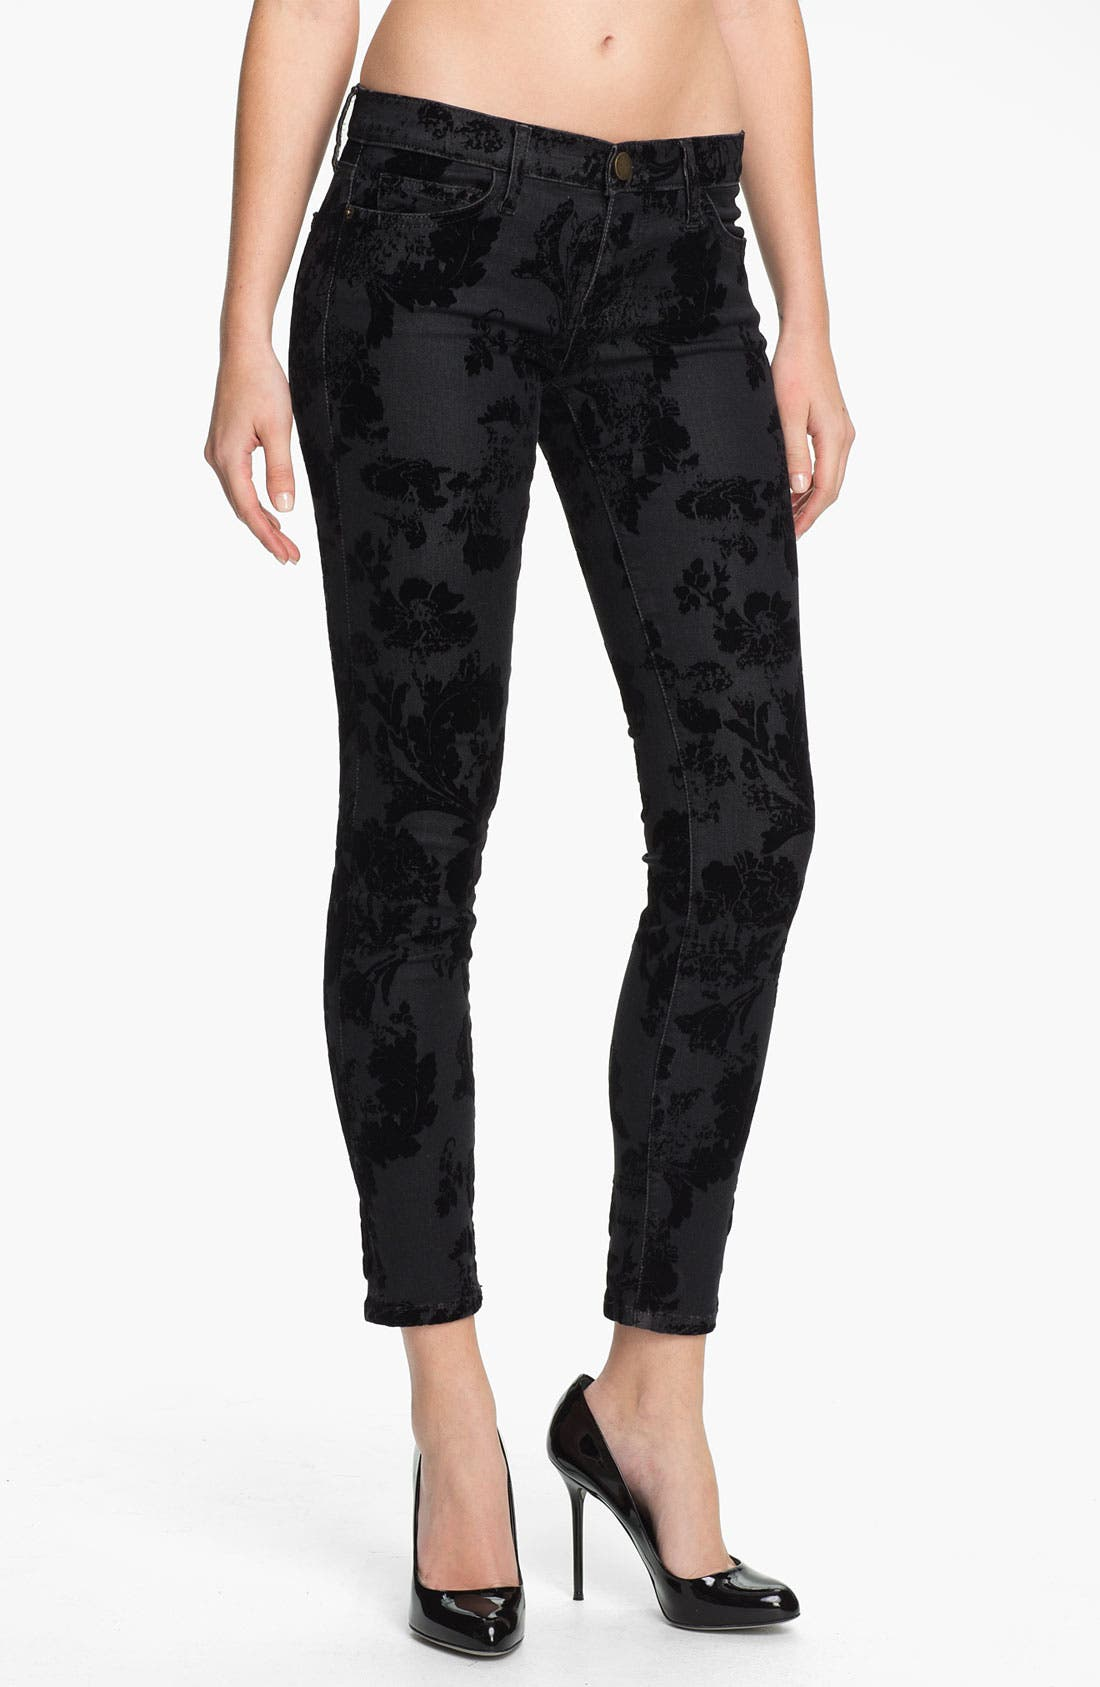 Alternate Image 1 Selected - Current/Elliott Ankle Zip Skinny Jeans (Black Velvet Floral)